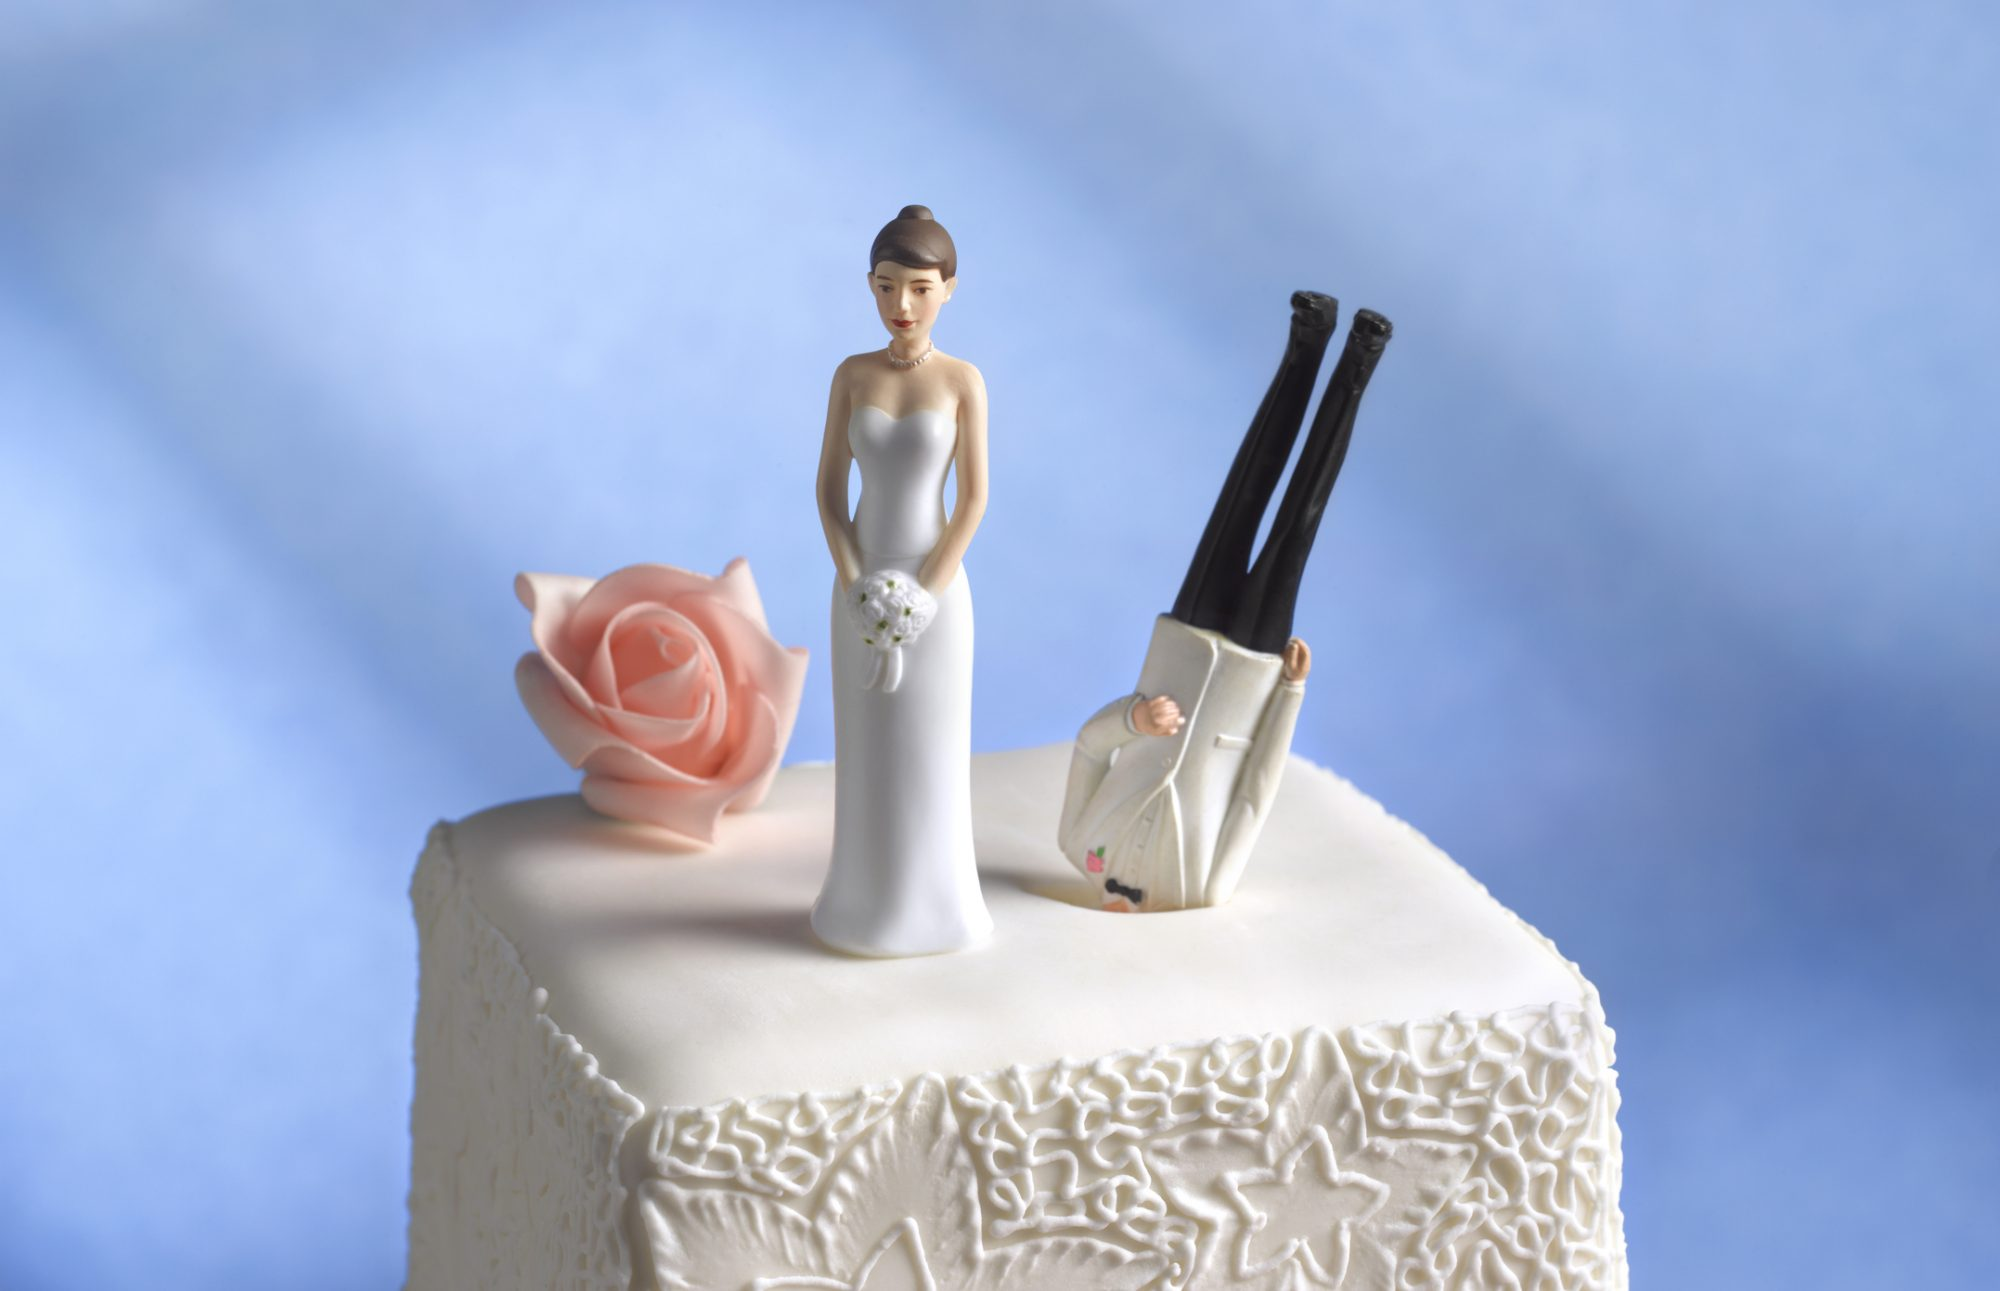 craziest-weddings-cake-blog0517.jpg